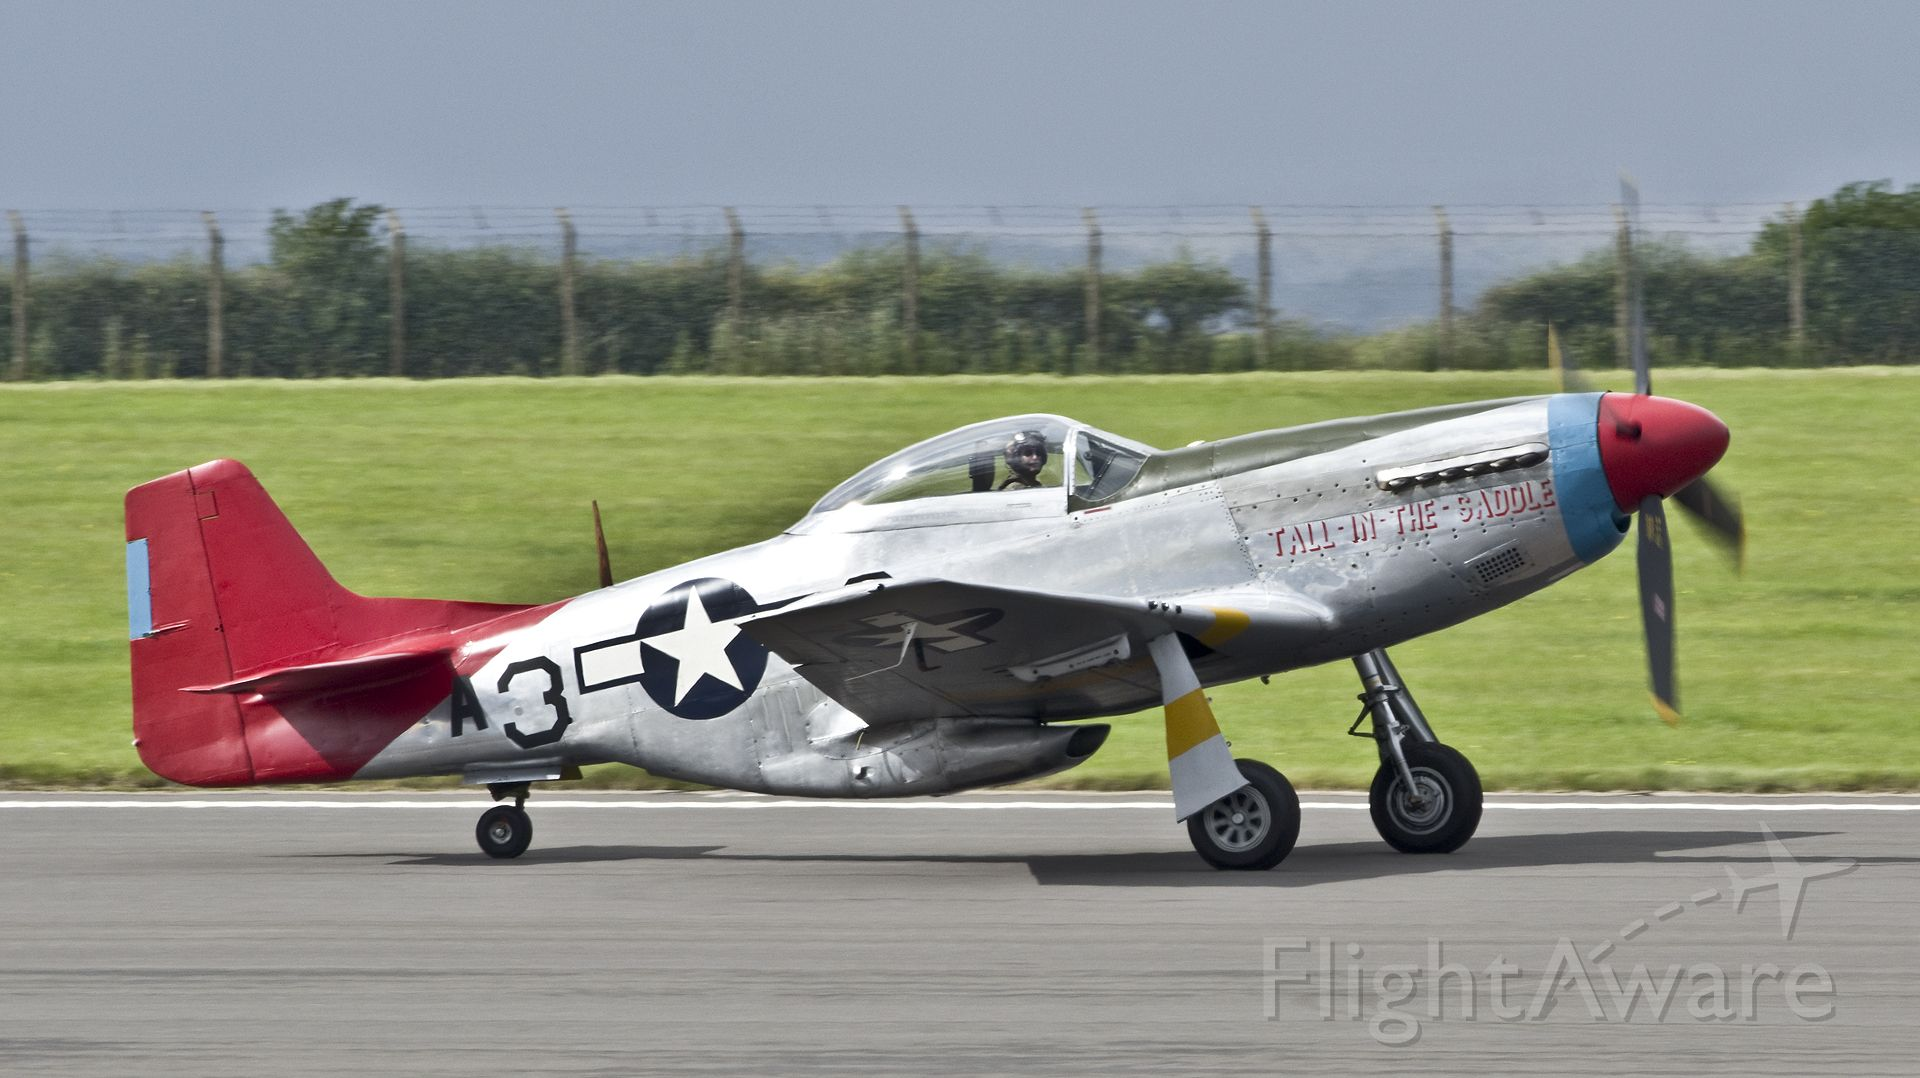 """North American P-51 Mustang (G-SIJJ) - North American P-51D Mustang 'A3-3' """"Tall-In-The-Saddle"""" (G-SIJJ).Full US military serial 44-72035.<br>Repainted for the 2016 season, this very original P-51 now wears her own genuine 'Red Tail' 332nd Fighter Group markings and is believed to be the only Mustang to have served with the group which currently remains airworthy. RAF Scampton 9th September 2017"""